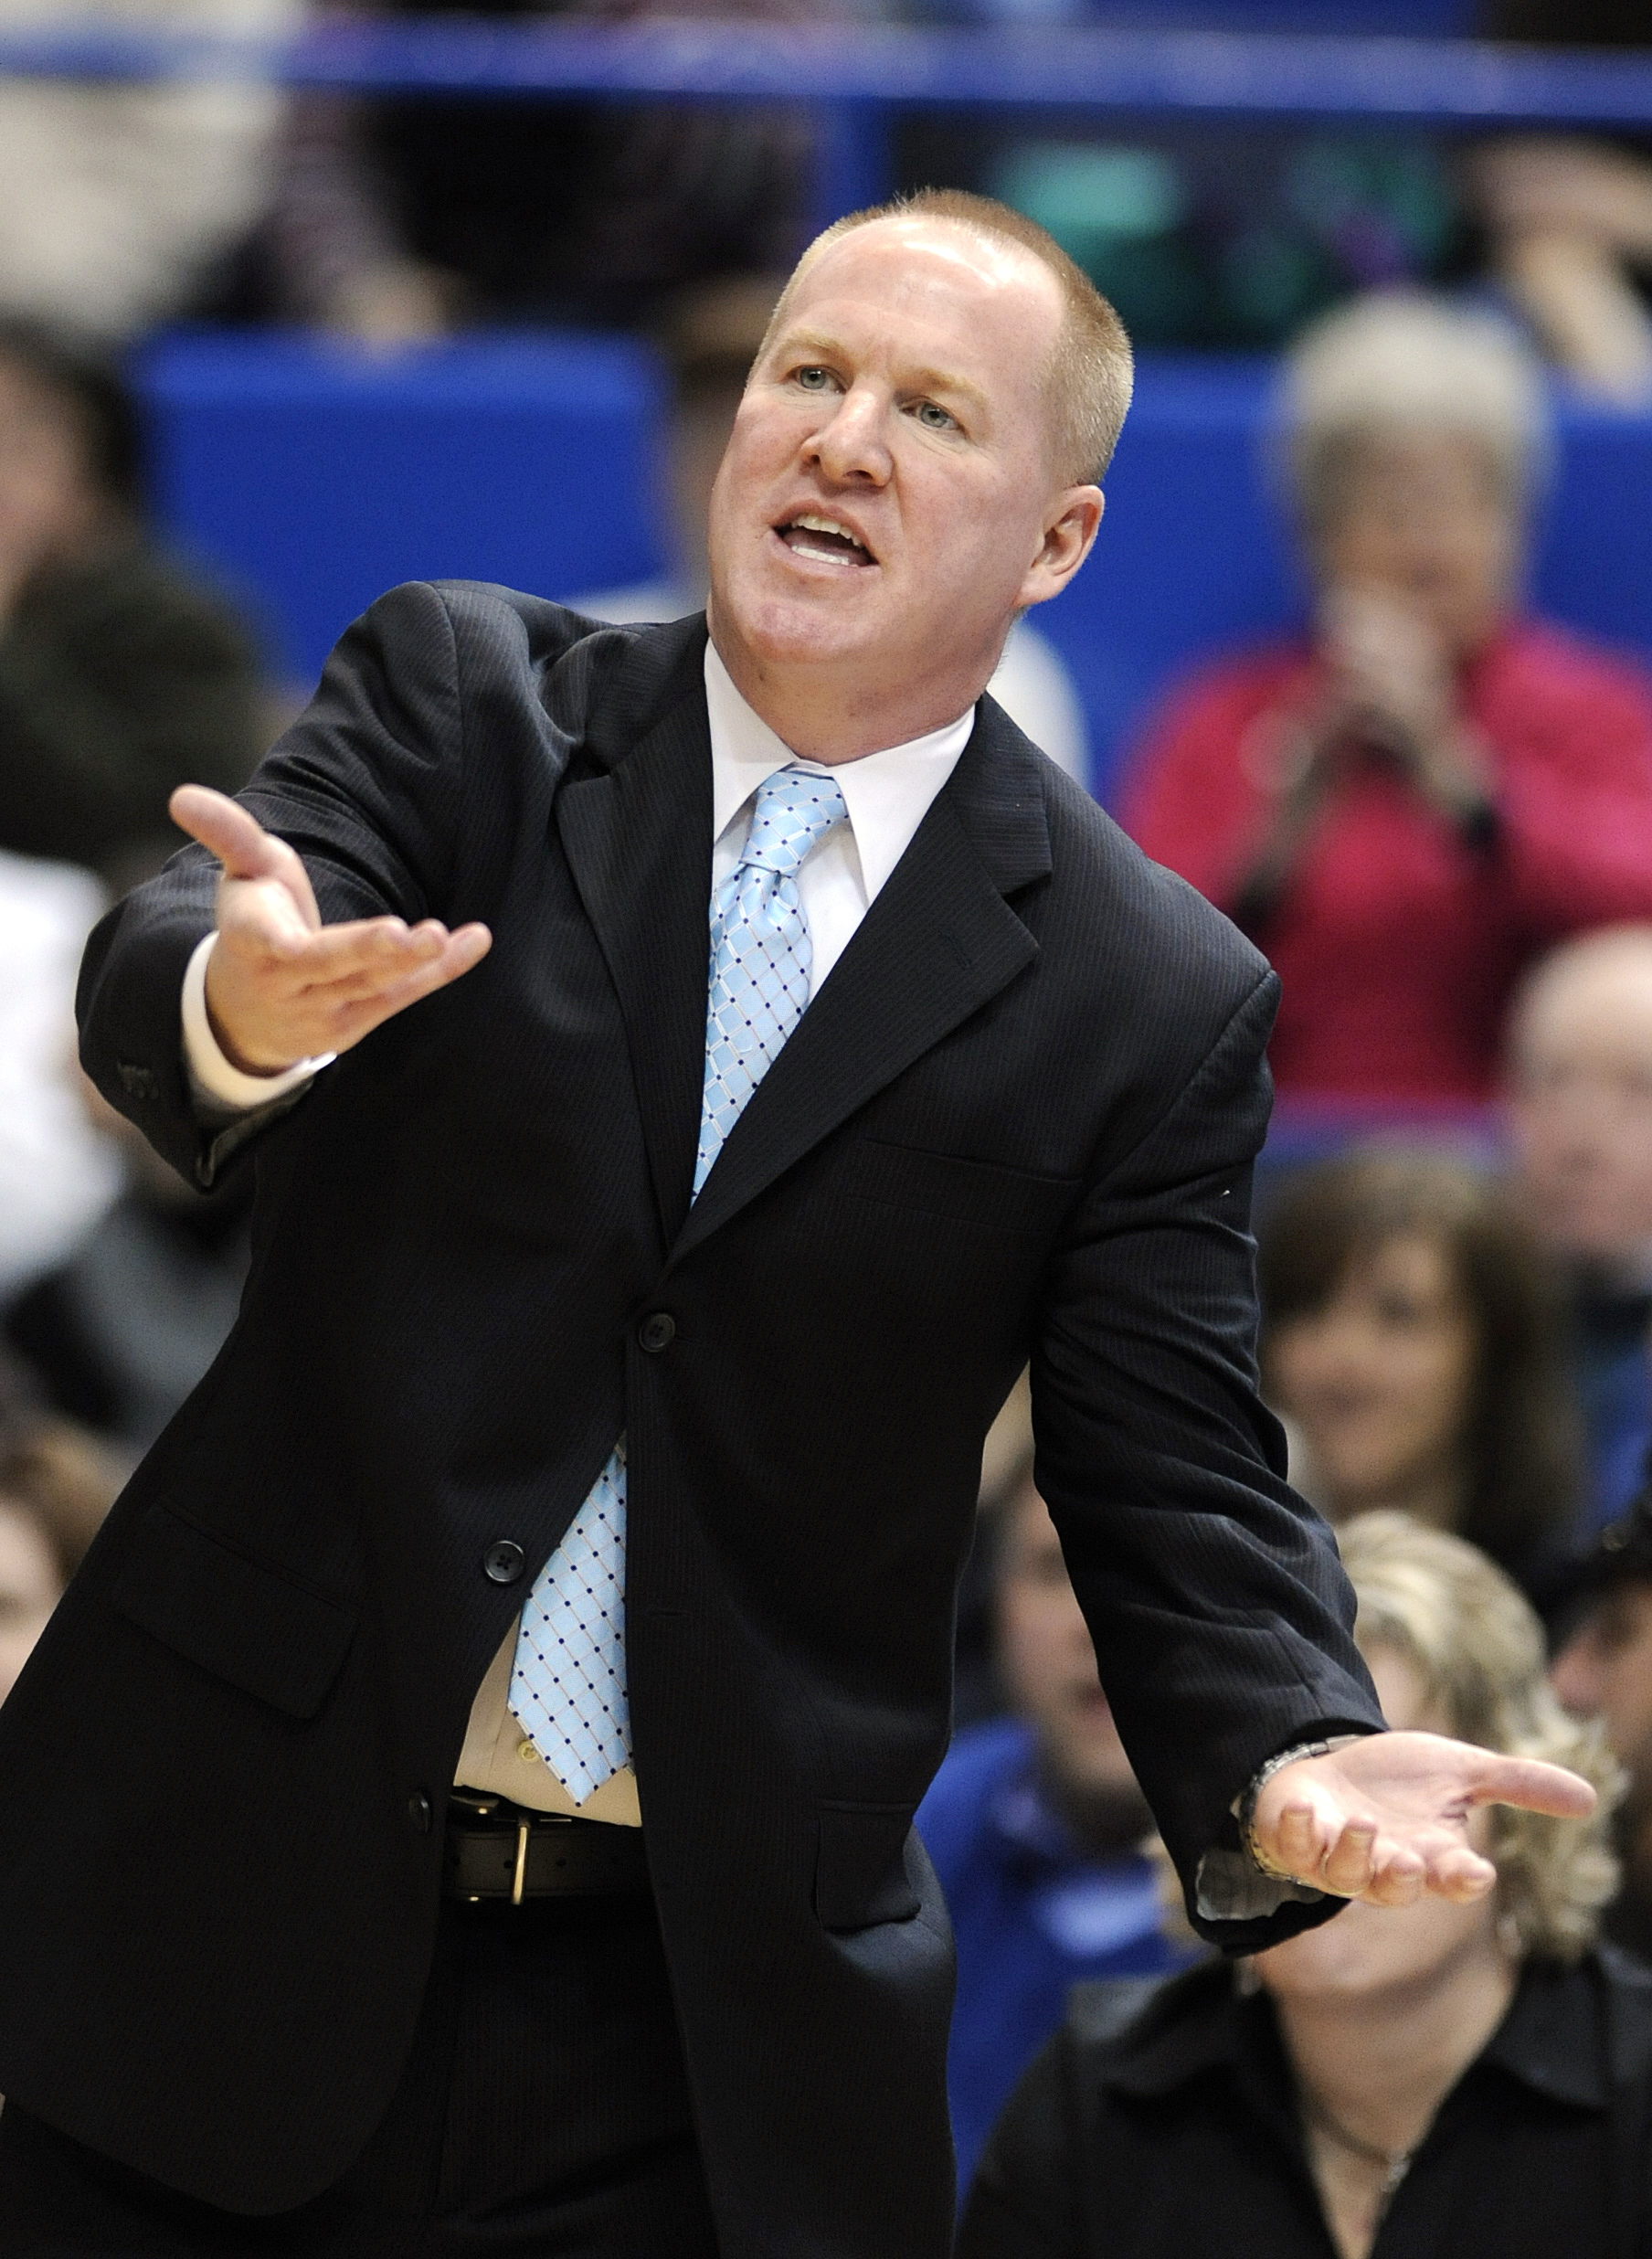 St. Bonaventure coach Jim Crowley gestures during the first half of his team's 88-39 loss to Connecticut in an NCAA college basketball game in Hartford, Conn., on Sunday, Nov. 24, 2013. (AP Photo/Fred Beckham)